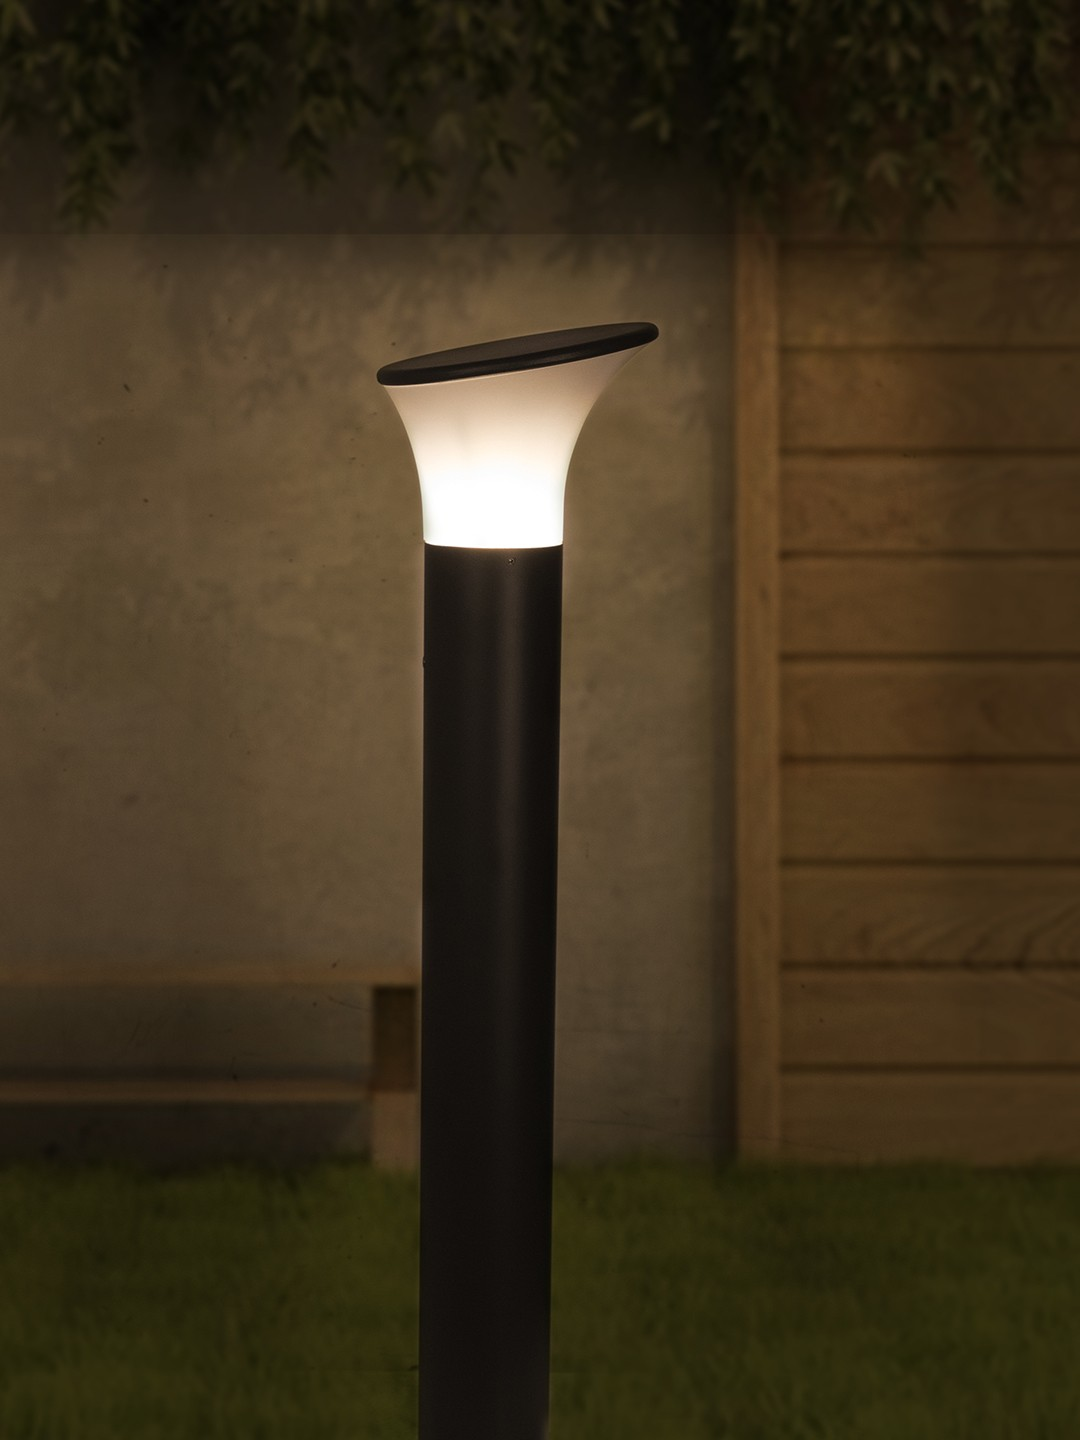 Contemporary Outdoor Bollard Light in Aluminium and Bent Acrylic Shade